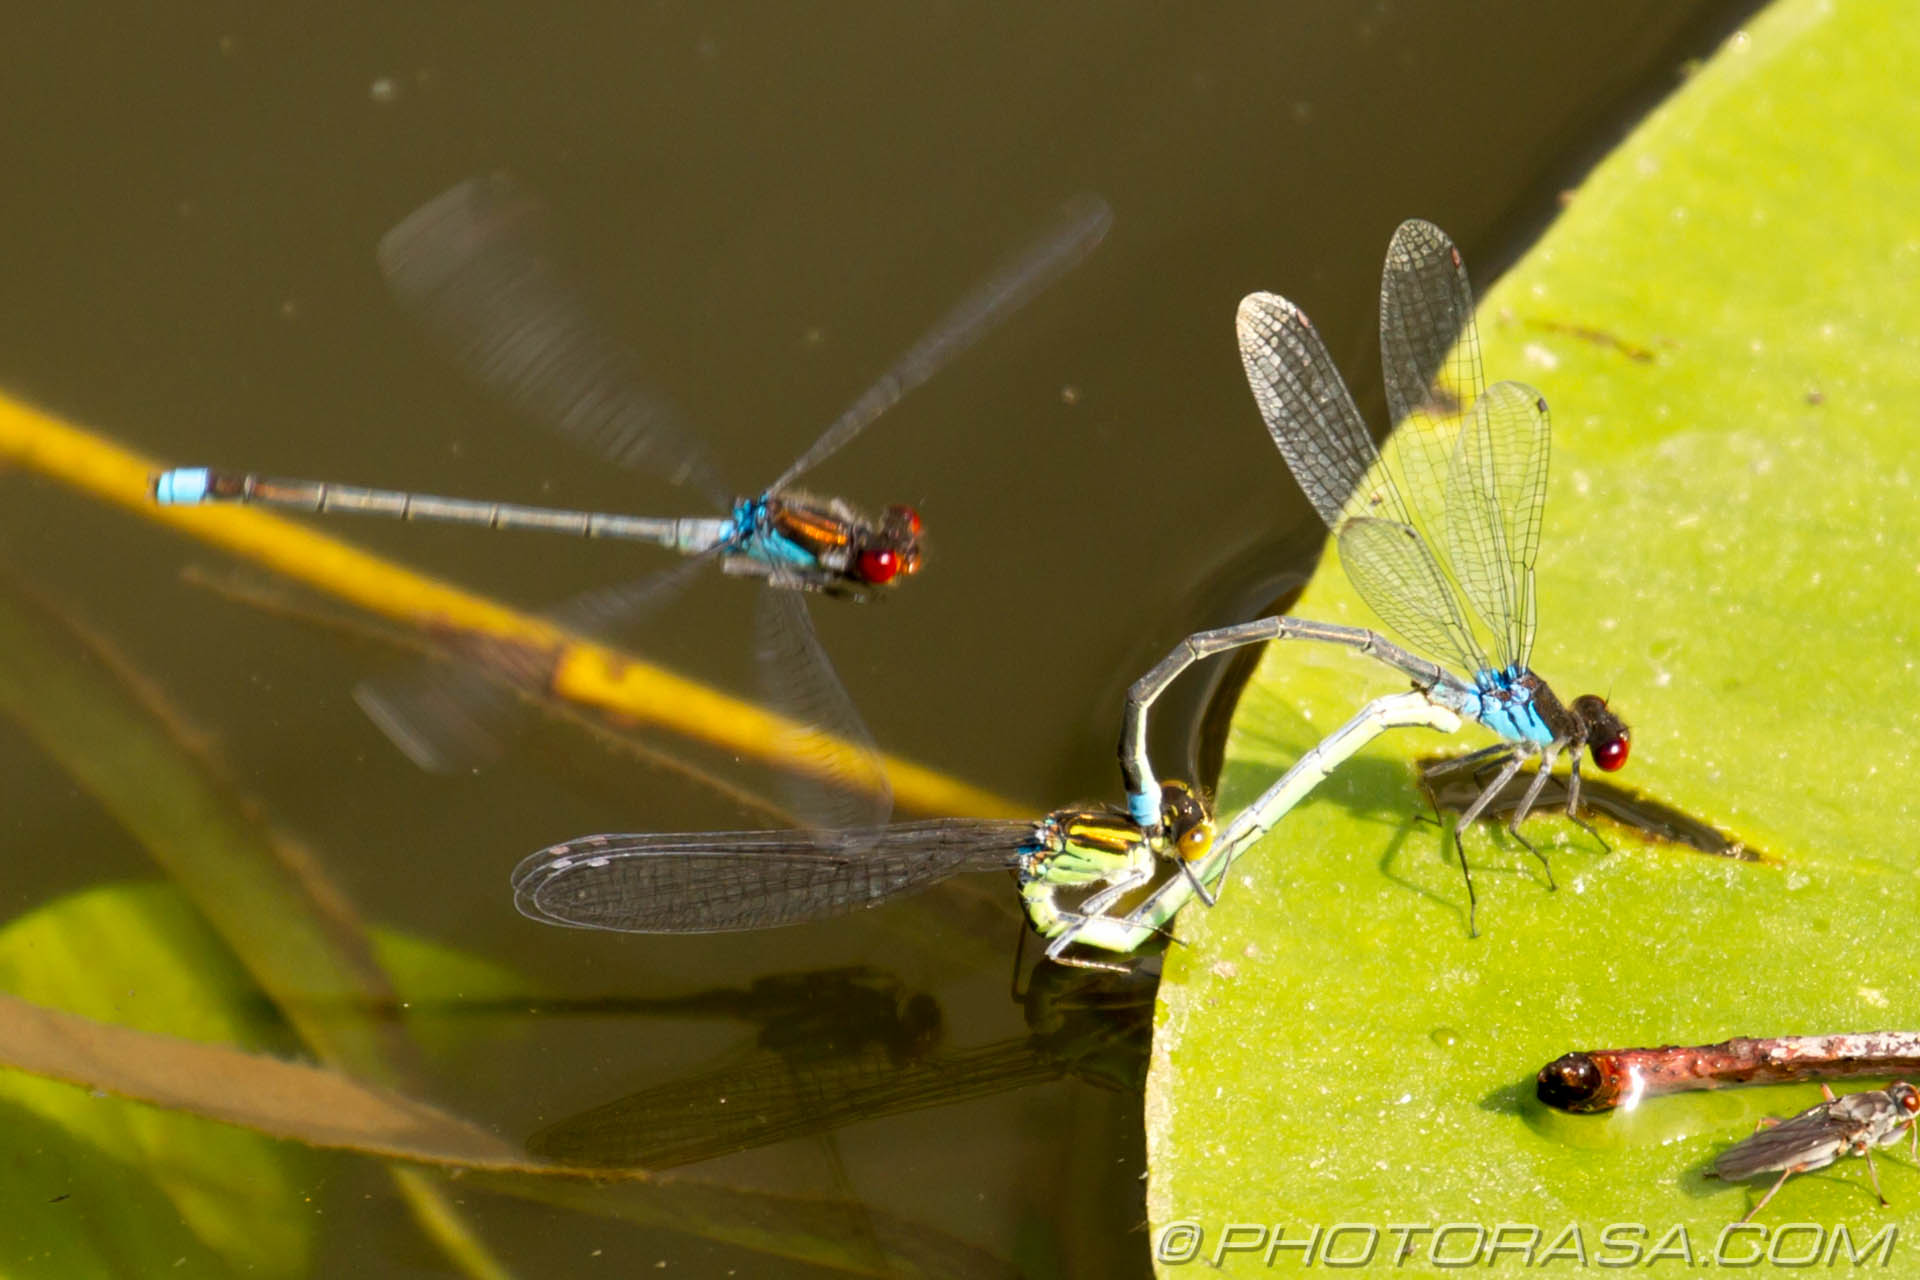 http://photorasa.com/damselflies/damsel-flies-attacked-while-mating/